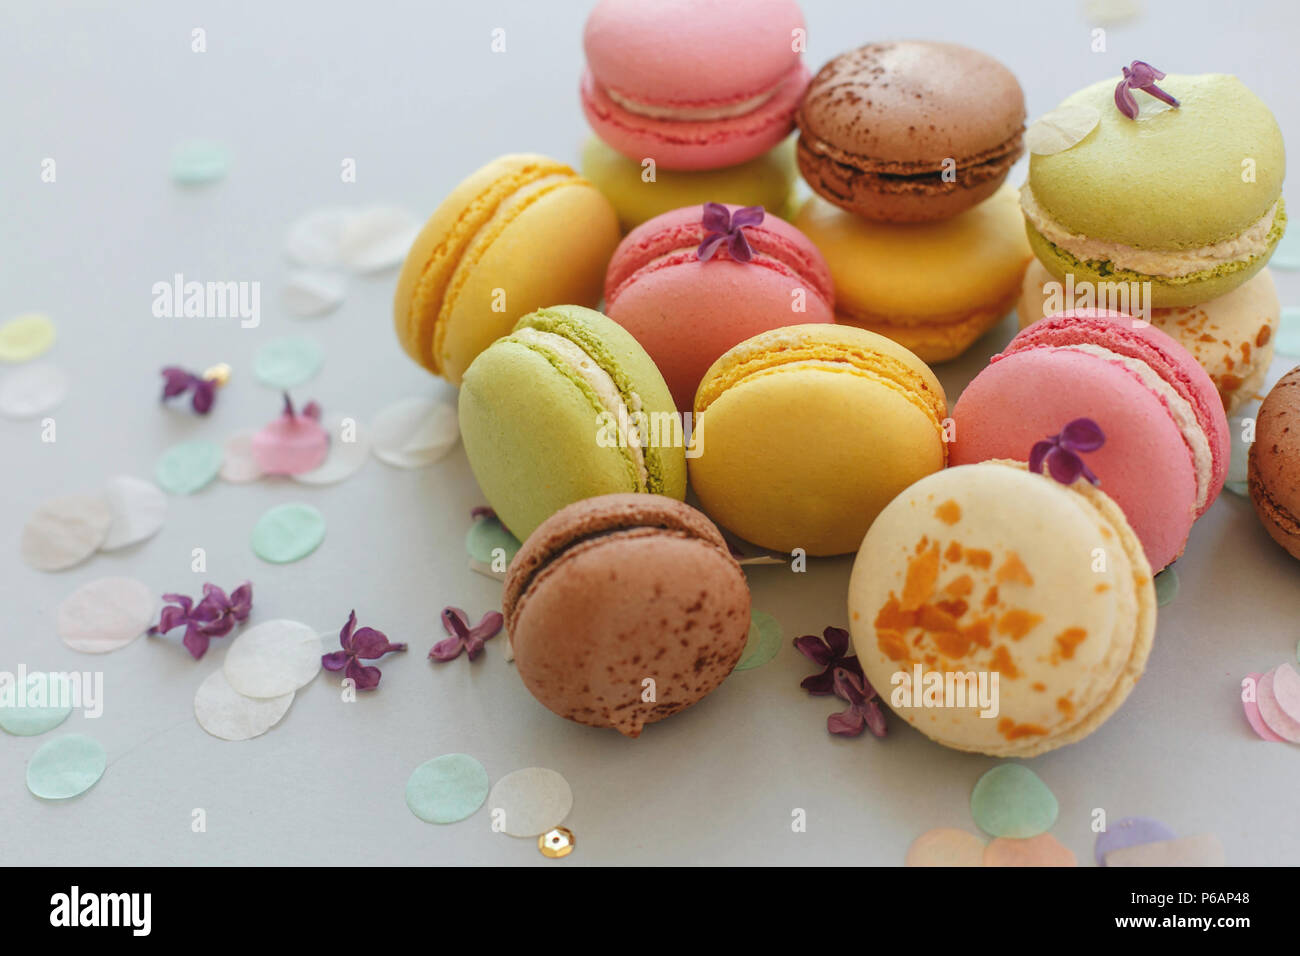 colorful macarons on trendy pastel gray paper with lilac flowers and confetti. tasty pink, yellow, green and brown macaroons. candy bar for party. foo - Stock Image